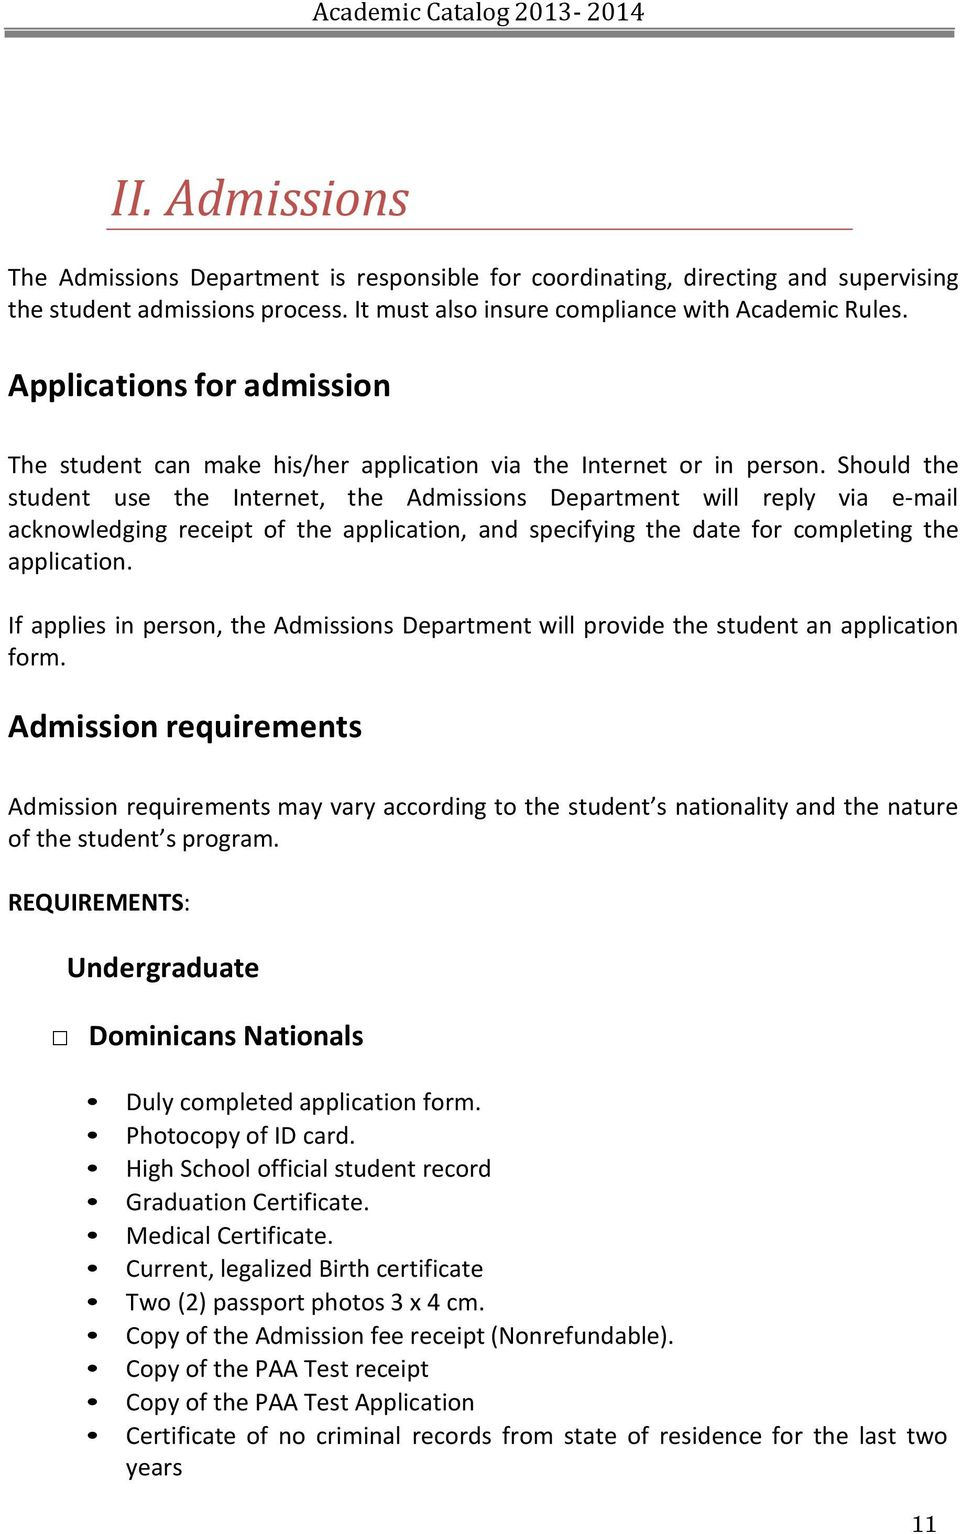 Should the student use the Internet, the Admissions Department will reply via e-mail acknowledging receipt of the application, and specifying the date for completing the application.